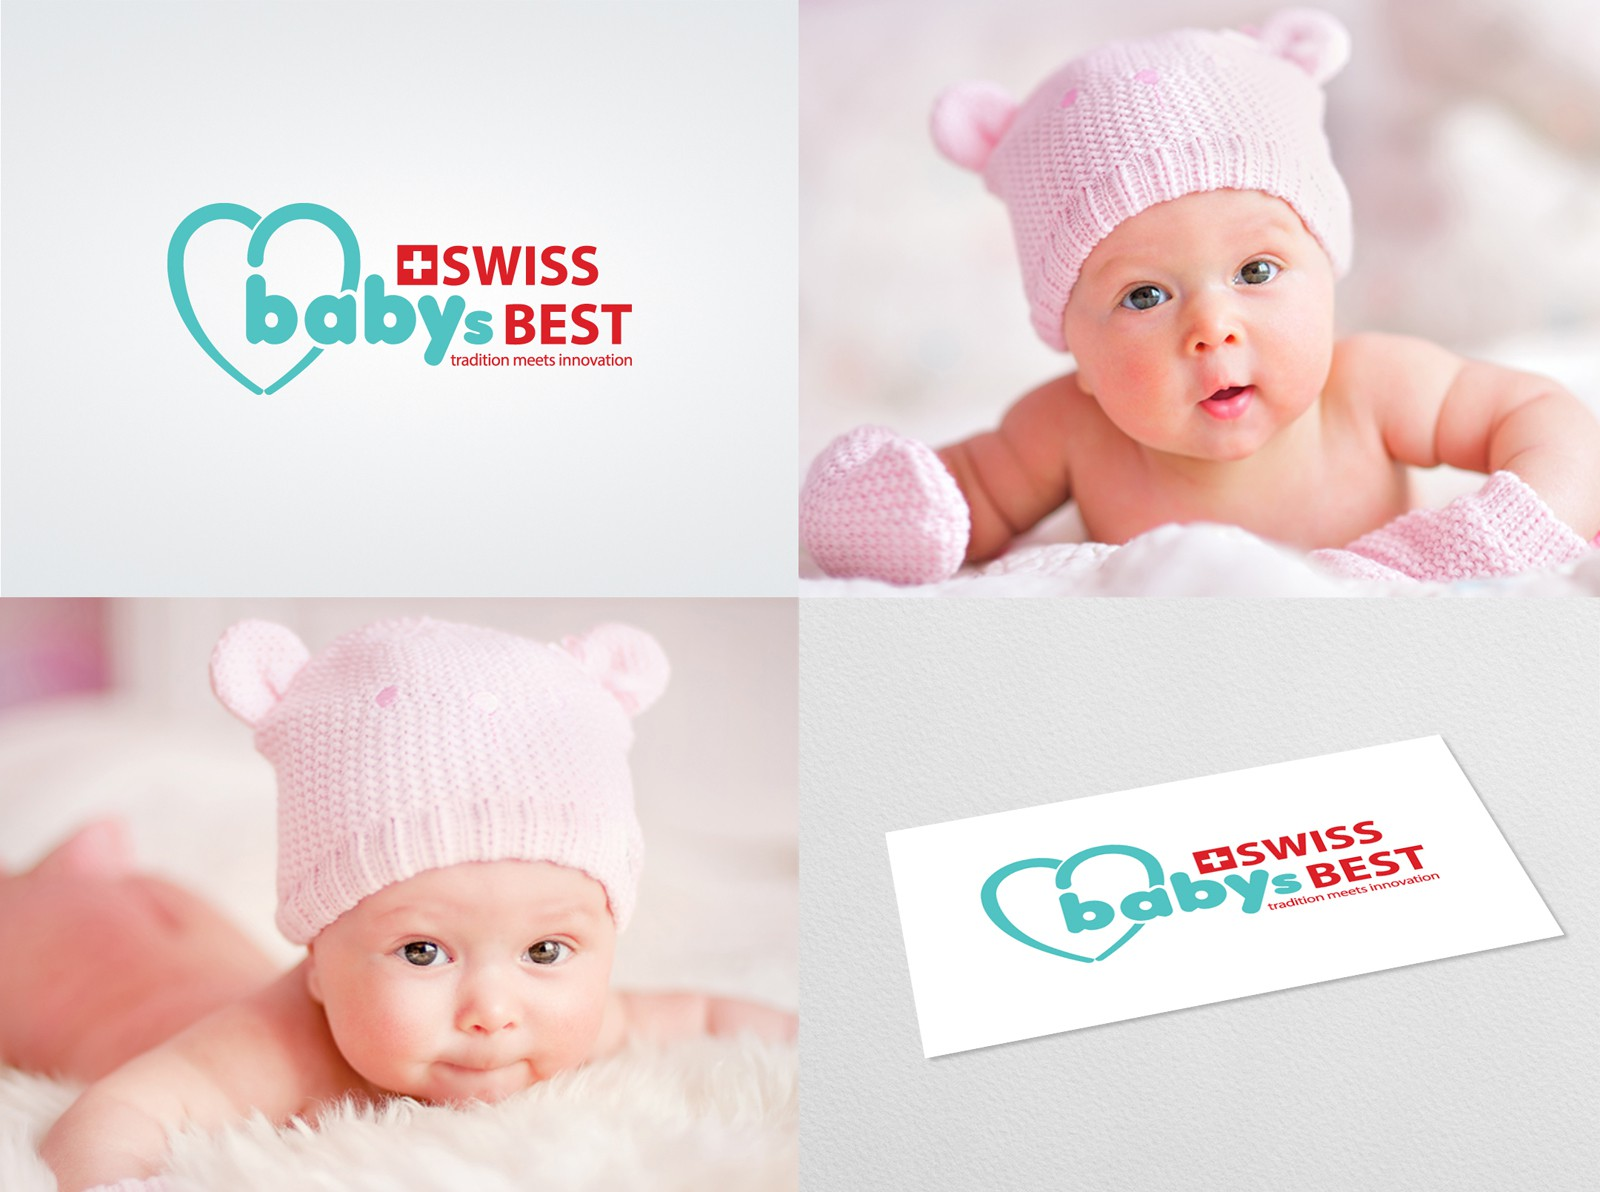 Creat an high quality logo for Swiss Premium Baby Products for Asia